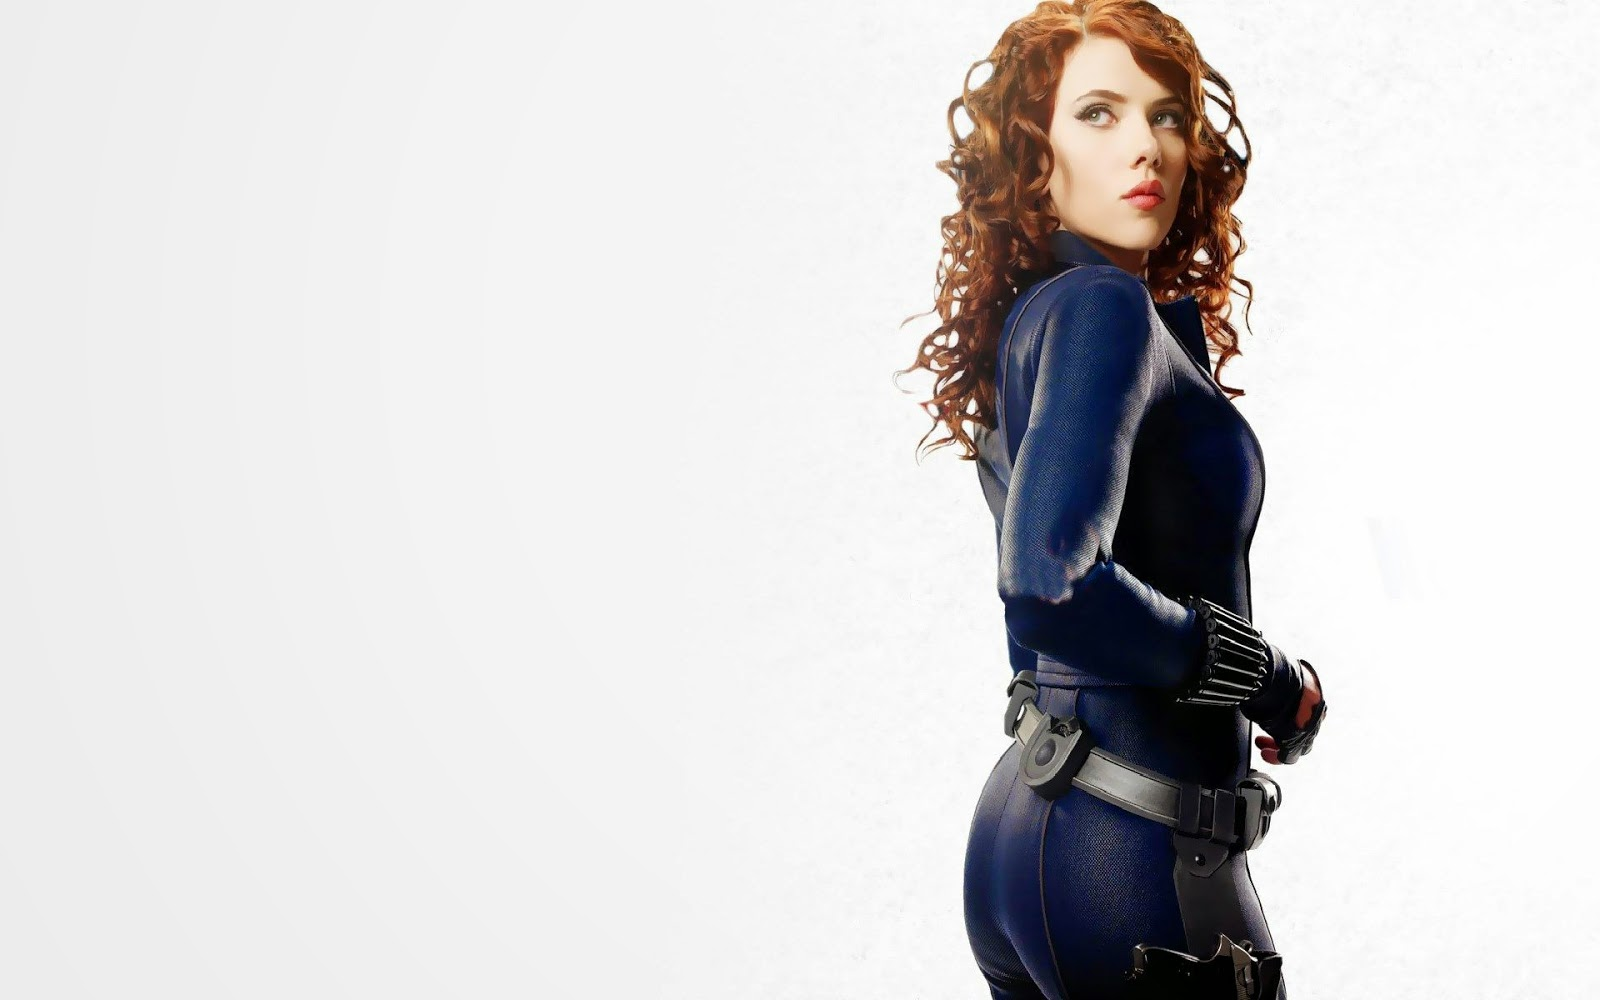 Scarlett Johansson Wallpaper: WOW: Scarlett Johansson Desktop Wallpapers, Female